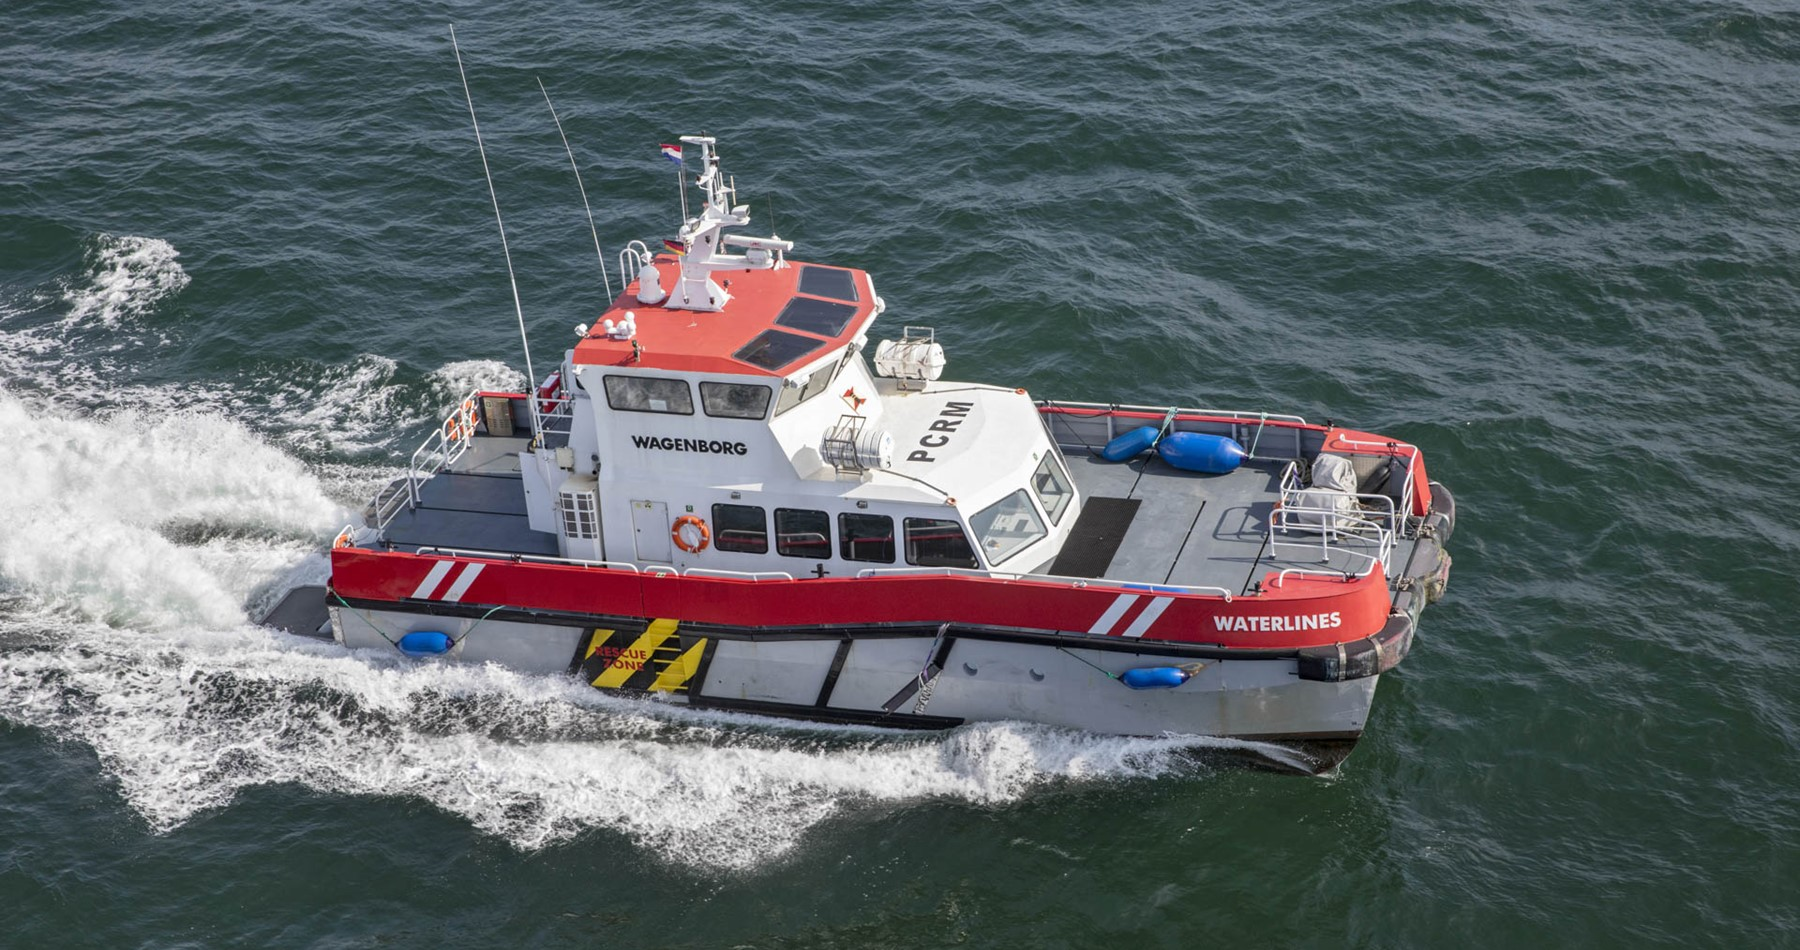 Crew transfer vessel 'Waterlines' gets second life within Wagenborg